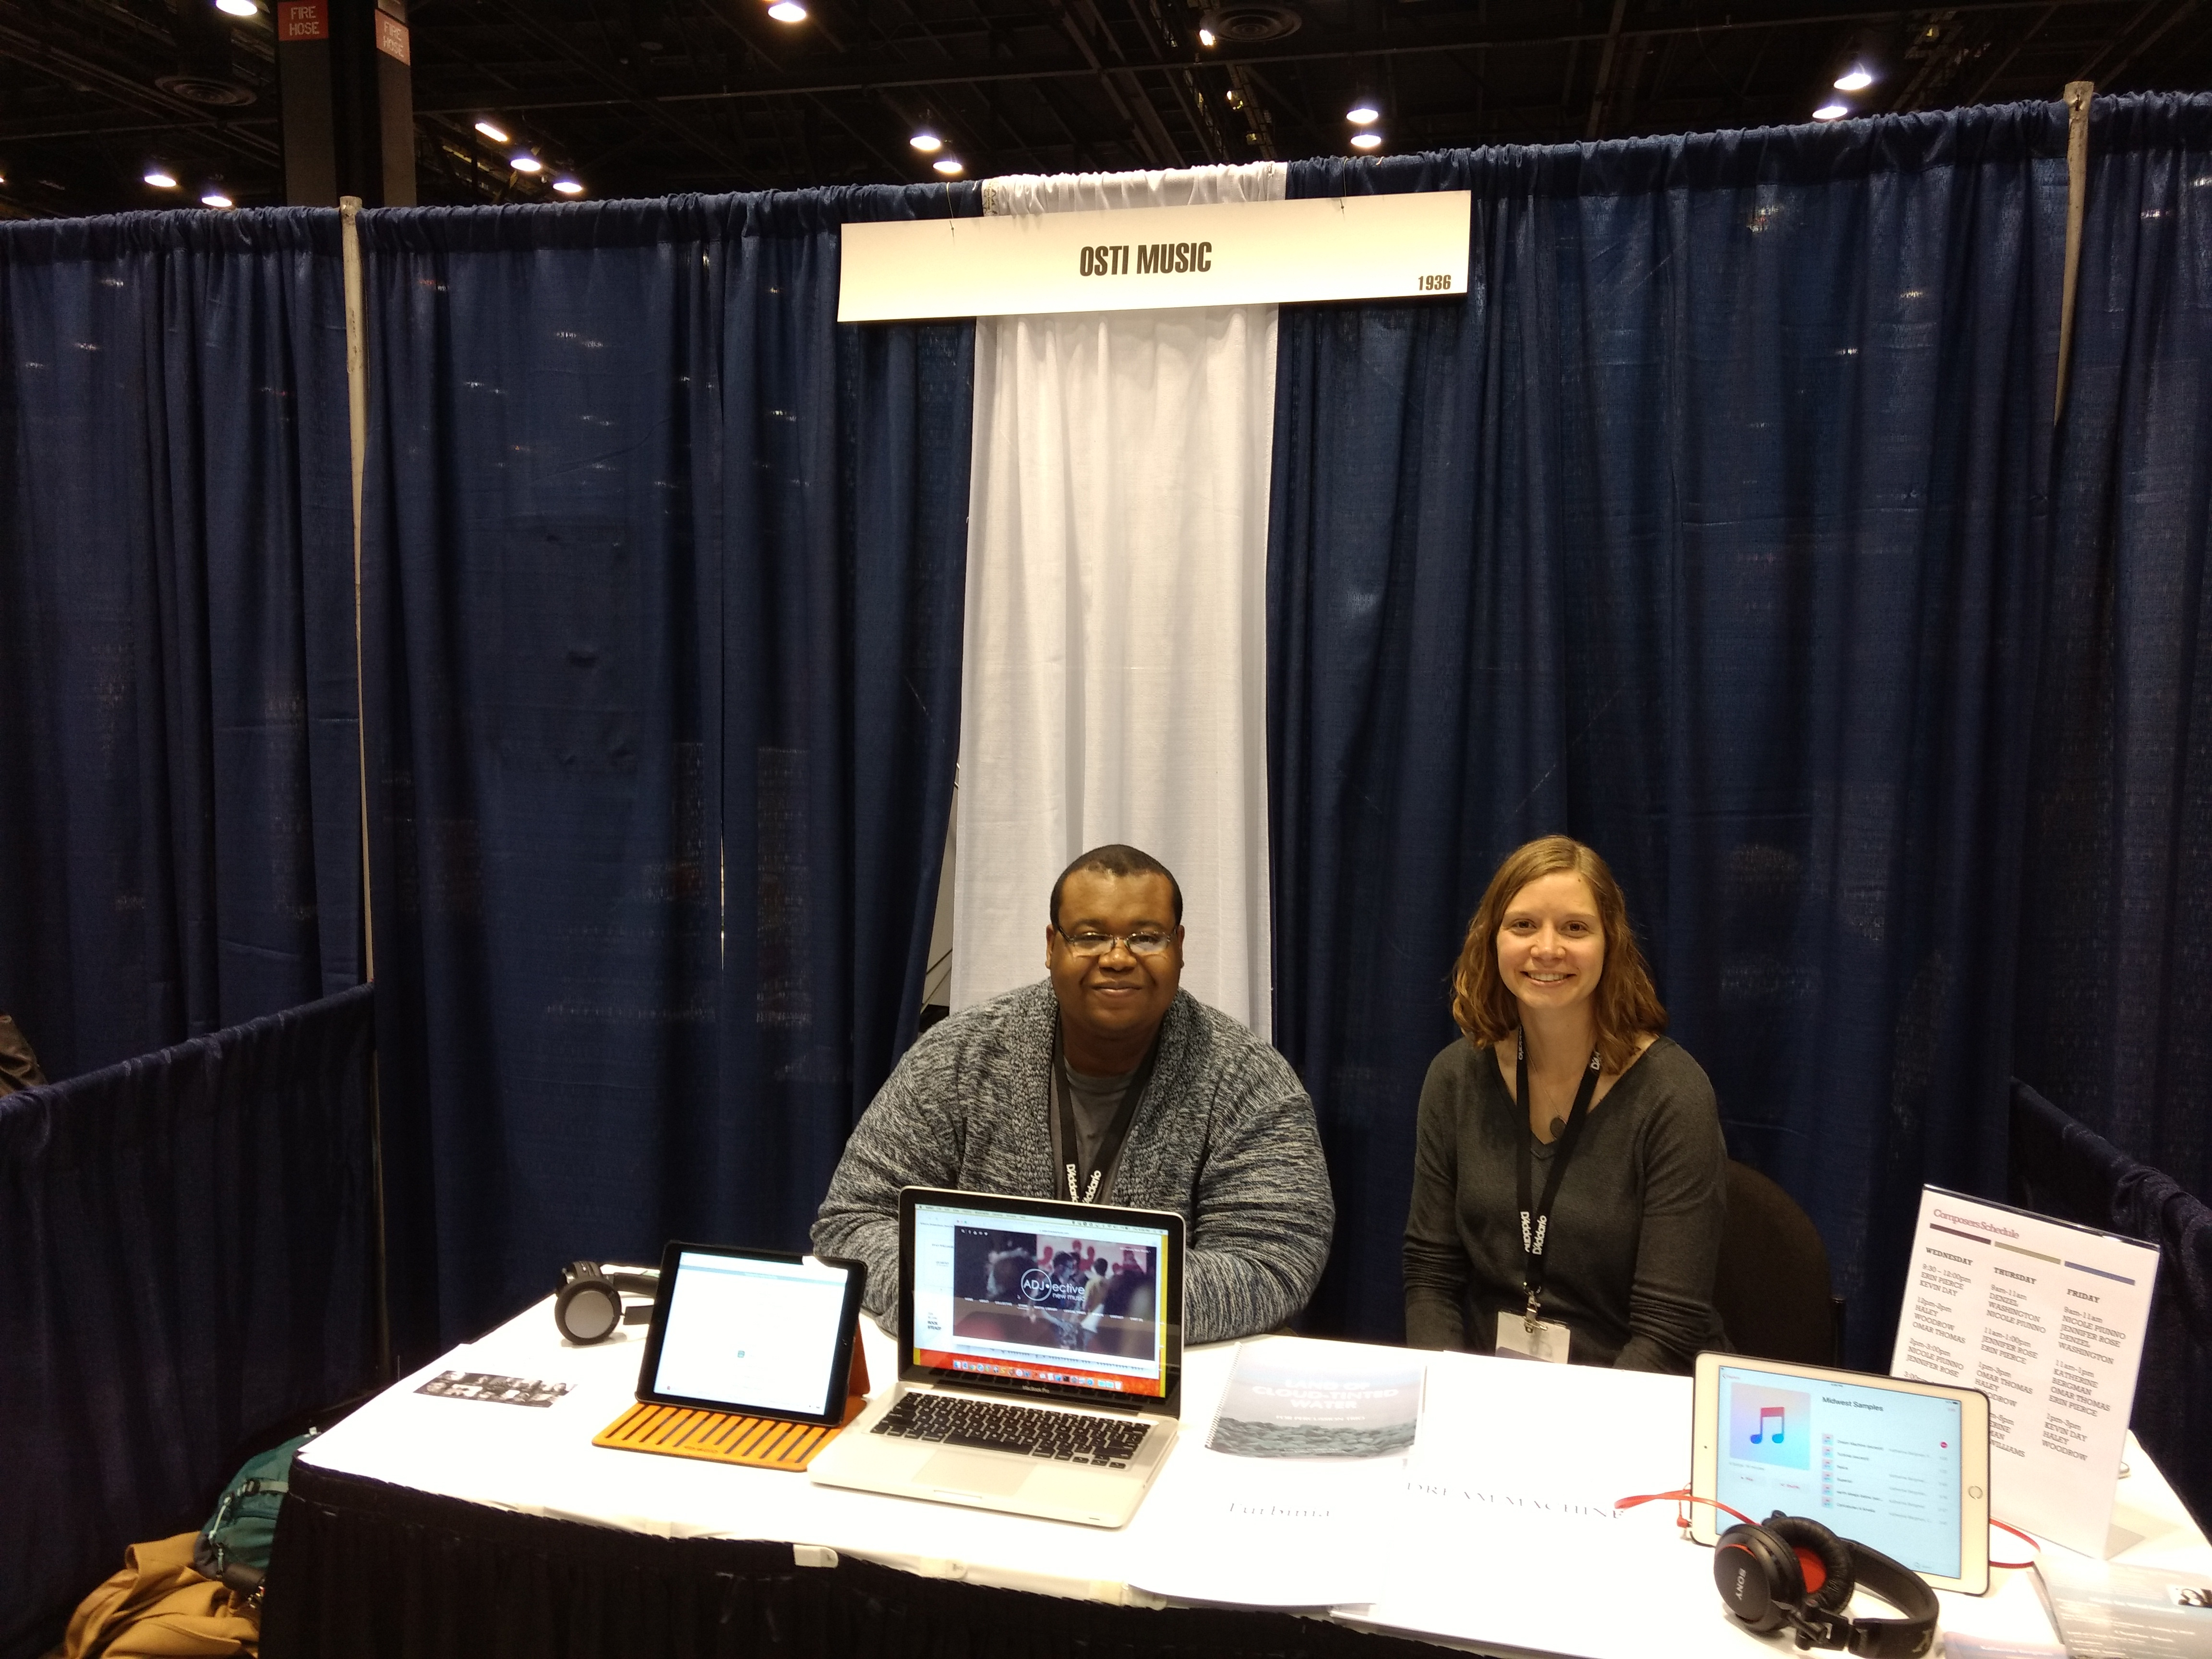 Evan Williams and Katherine Bergman at the Osti Music Booth with open laptops featuring their music.